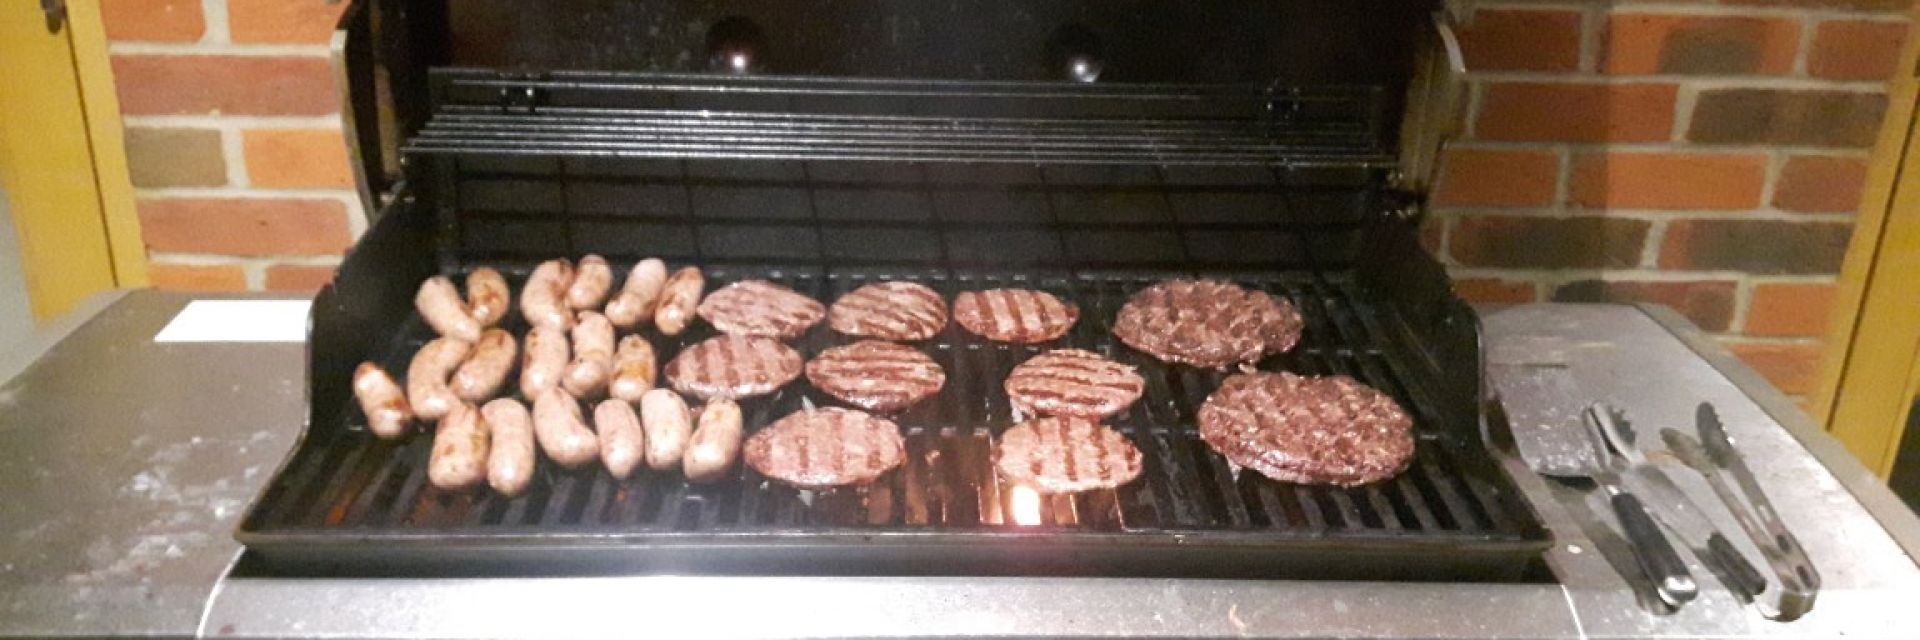 Gourmet  beef burgerds on a barbecue, handmade by our butcher for a private event in Dorchester, Dorset